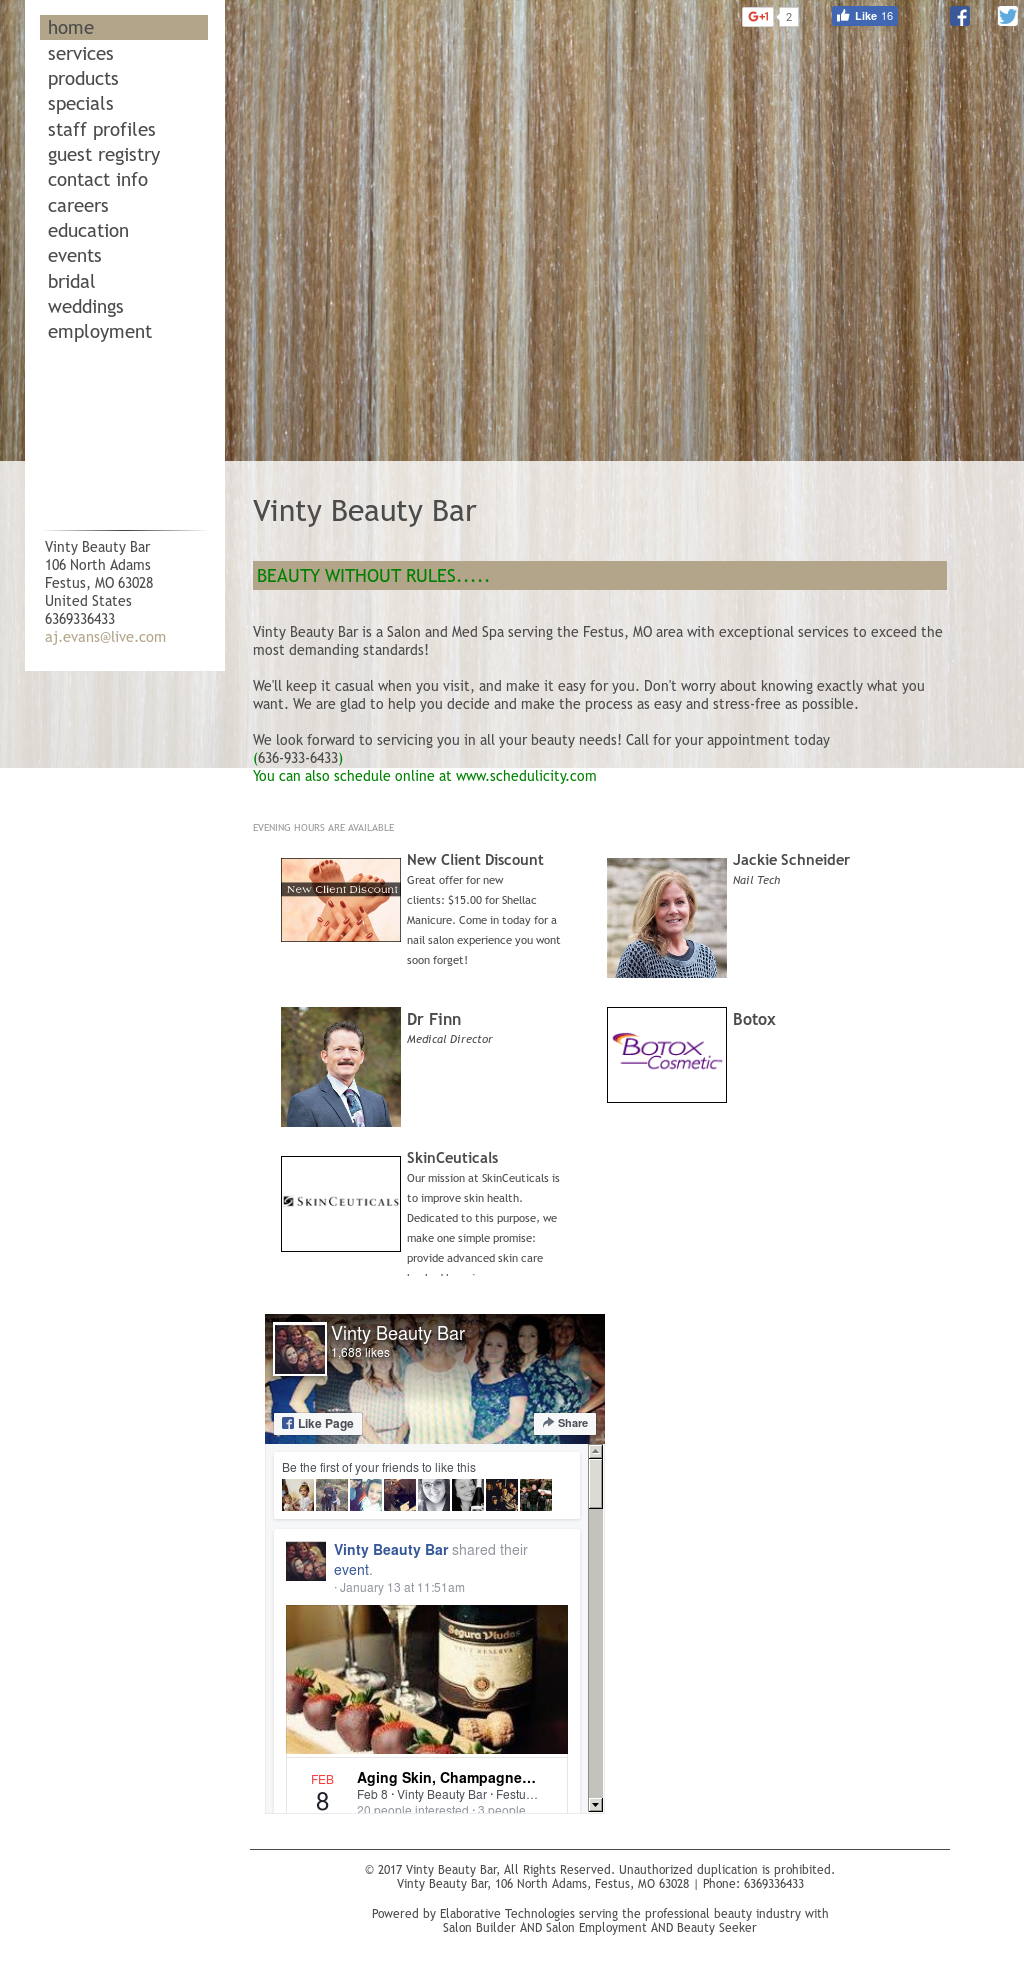 Vinty Beauty Bar Competitors, Revenue and Employees - Owler Company ...